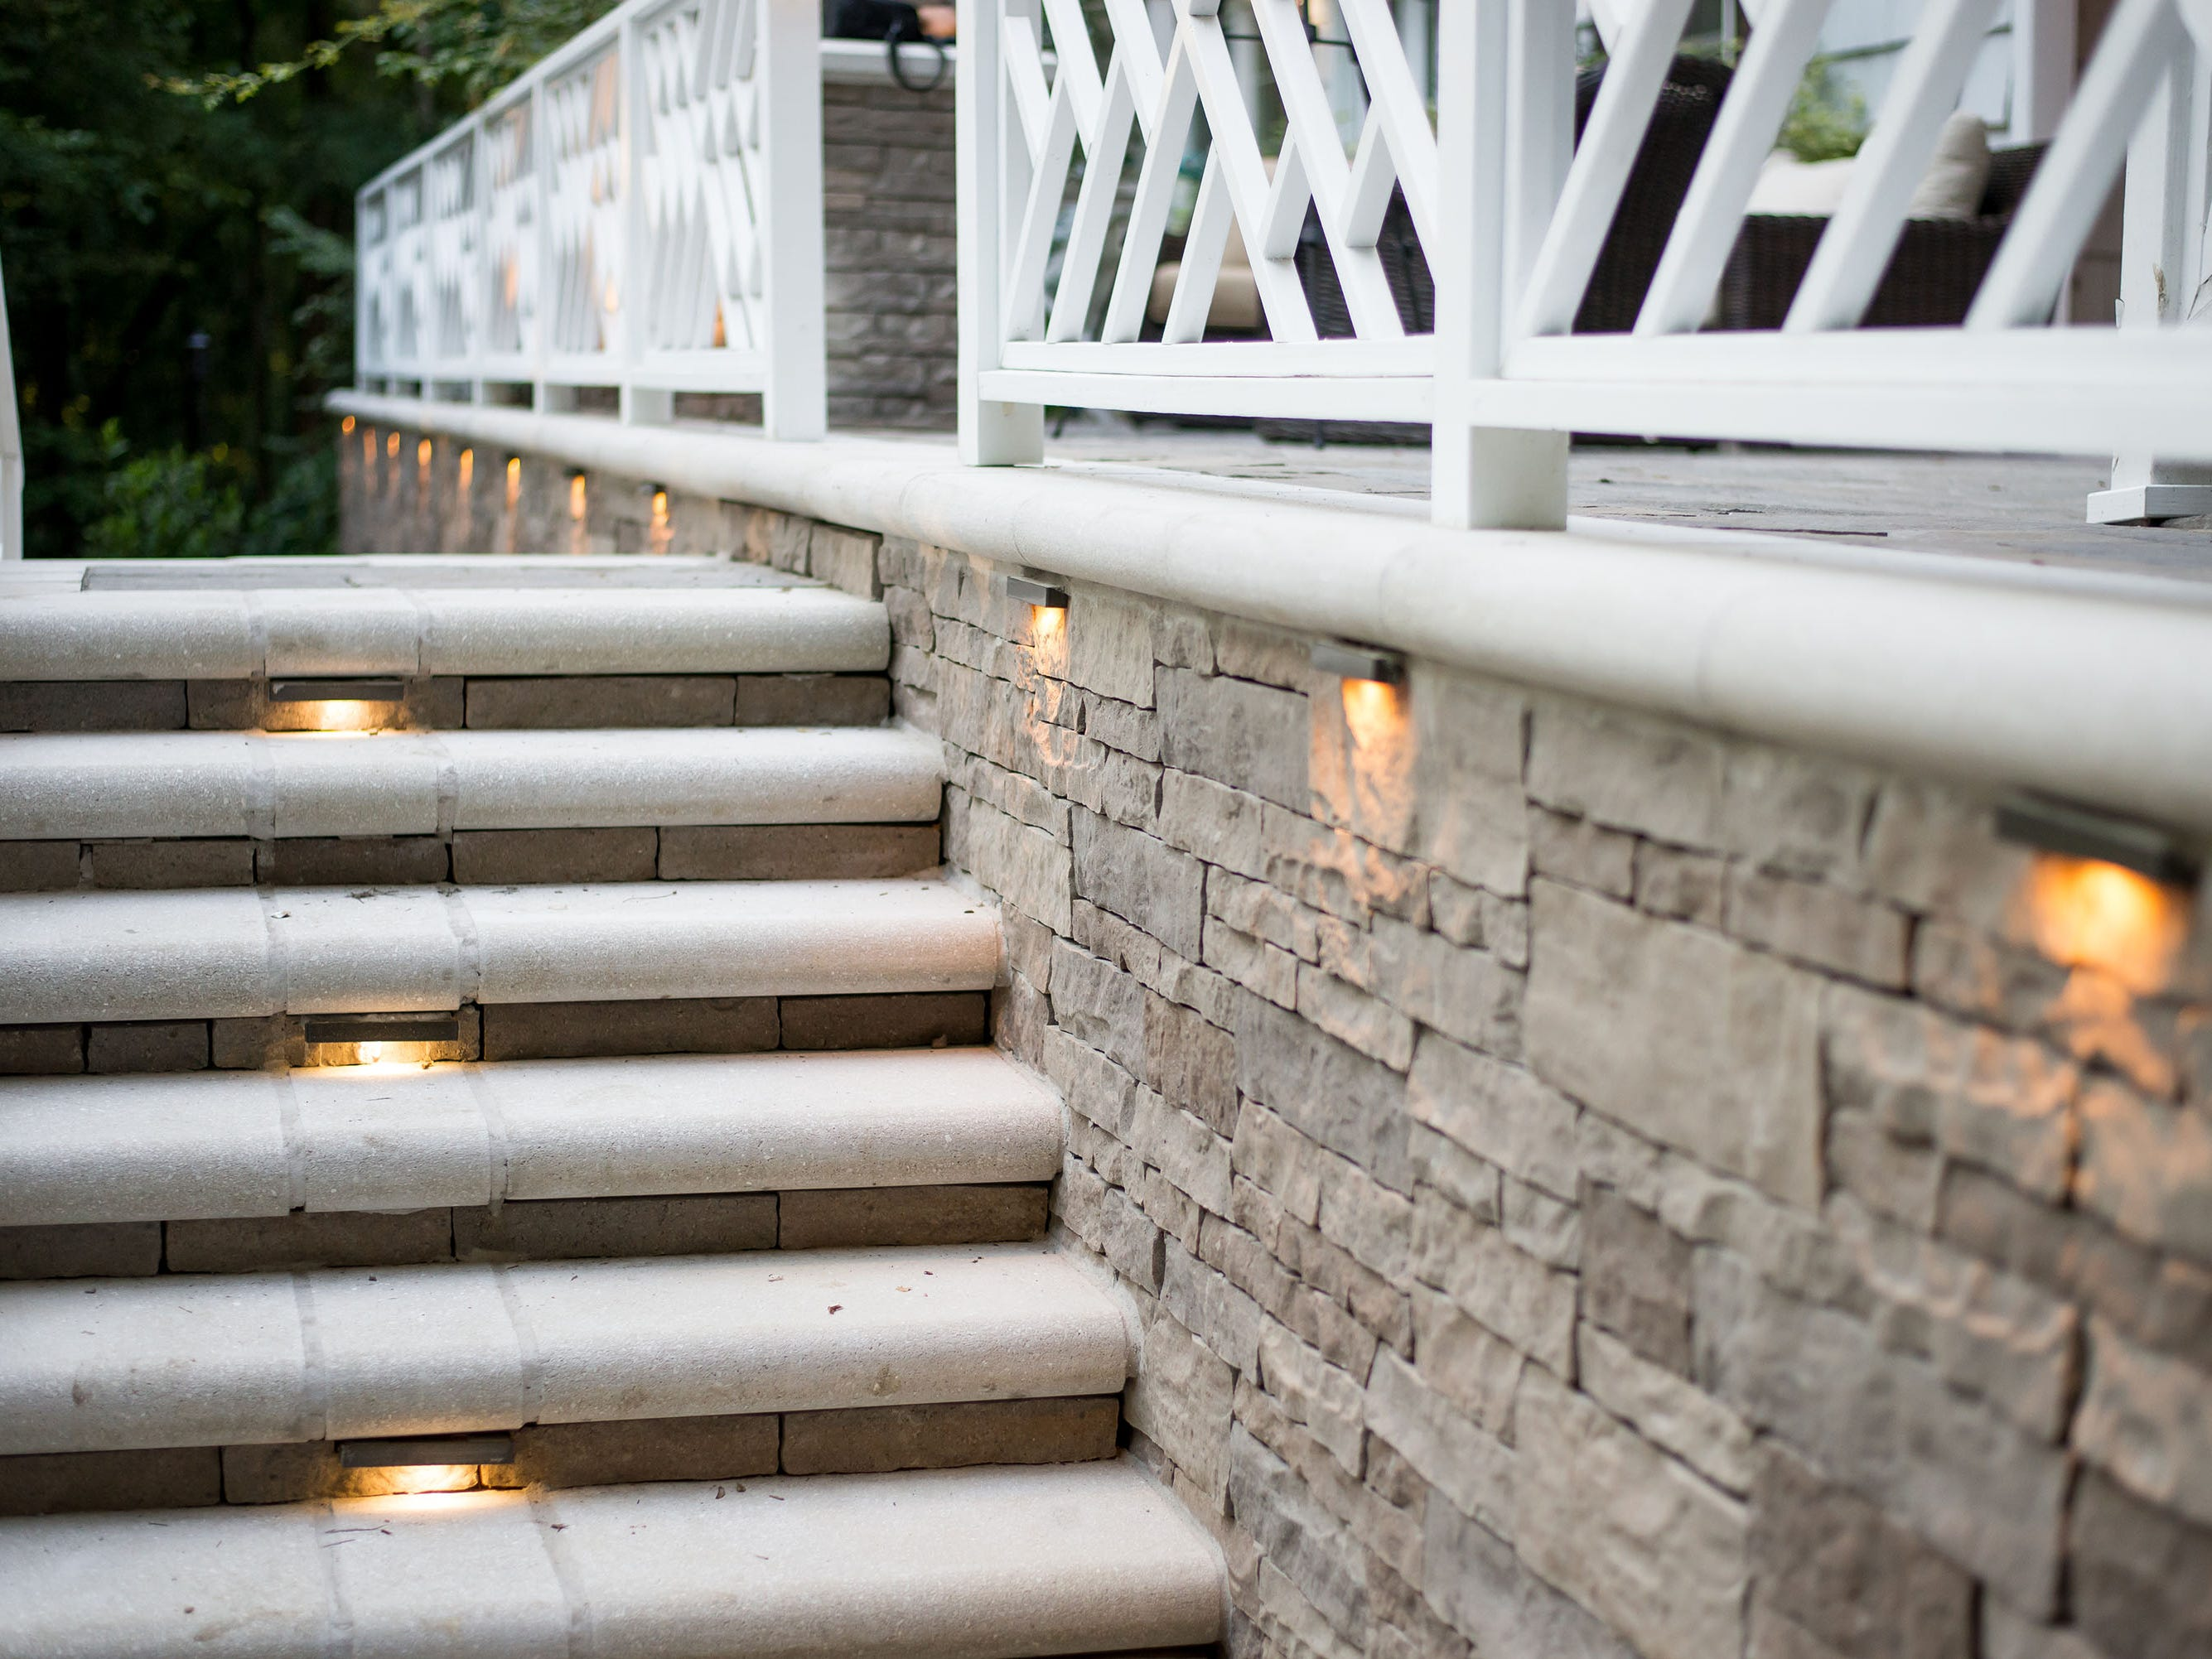 Lights within the steps and along the wall illuminate this outdoor space.